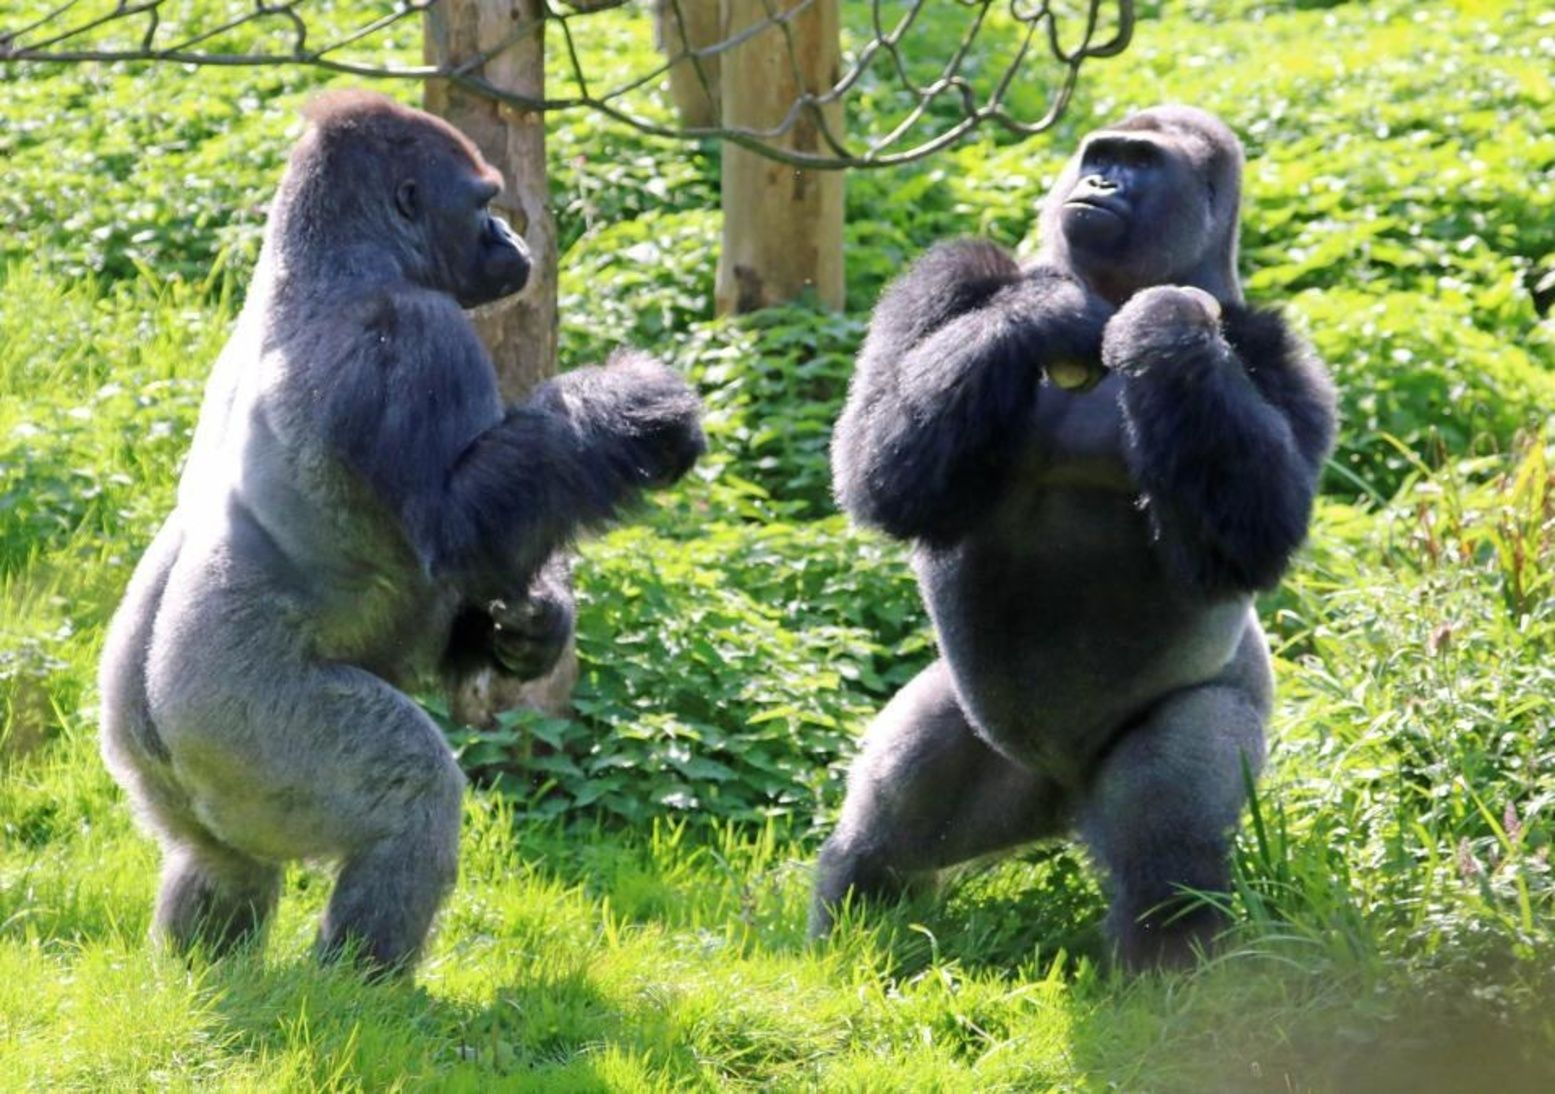 Gorillas chest-beating boxing match caught on camera at zoo